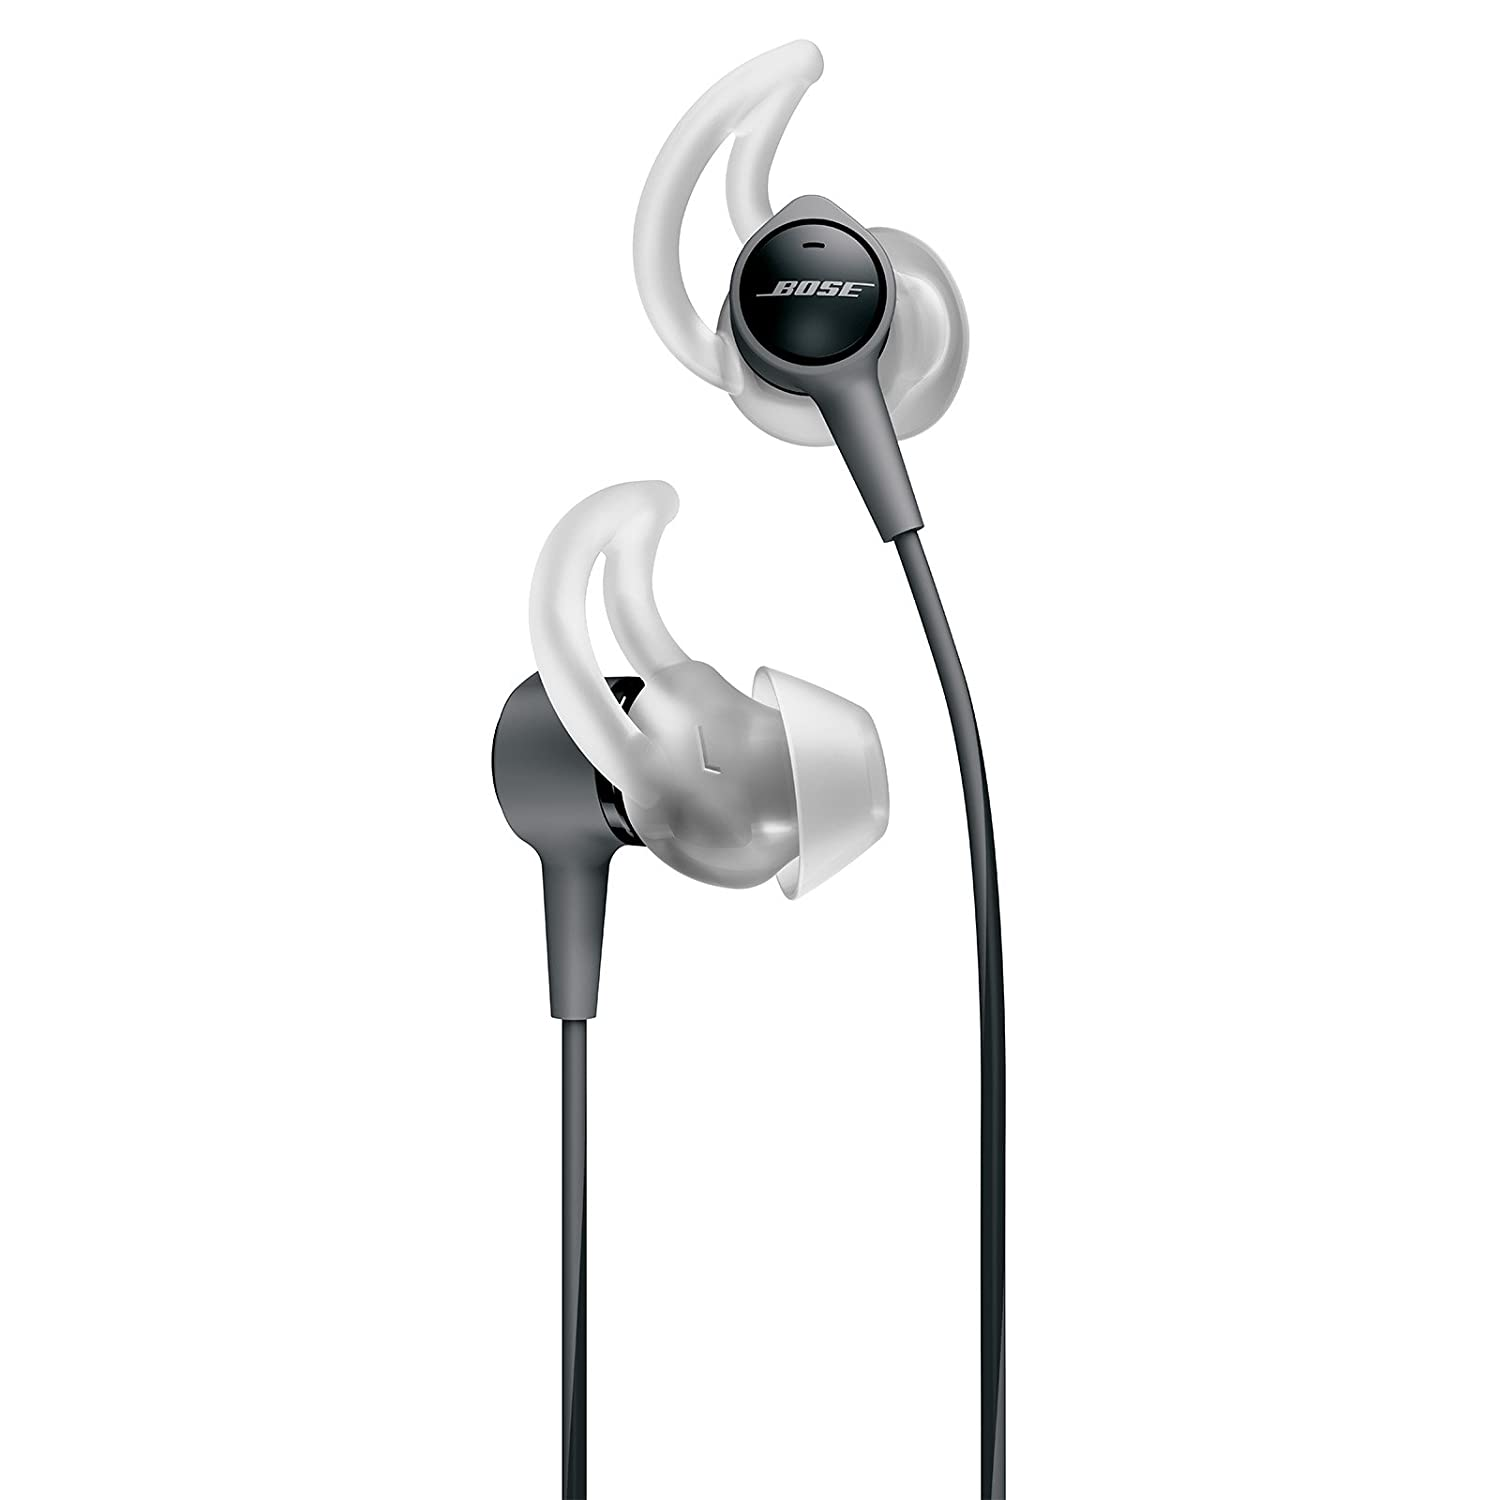 Bose SoundTrue Ultra in-ear headphones - Apple devices Charcoal